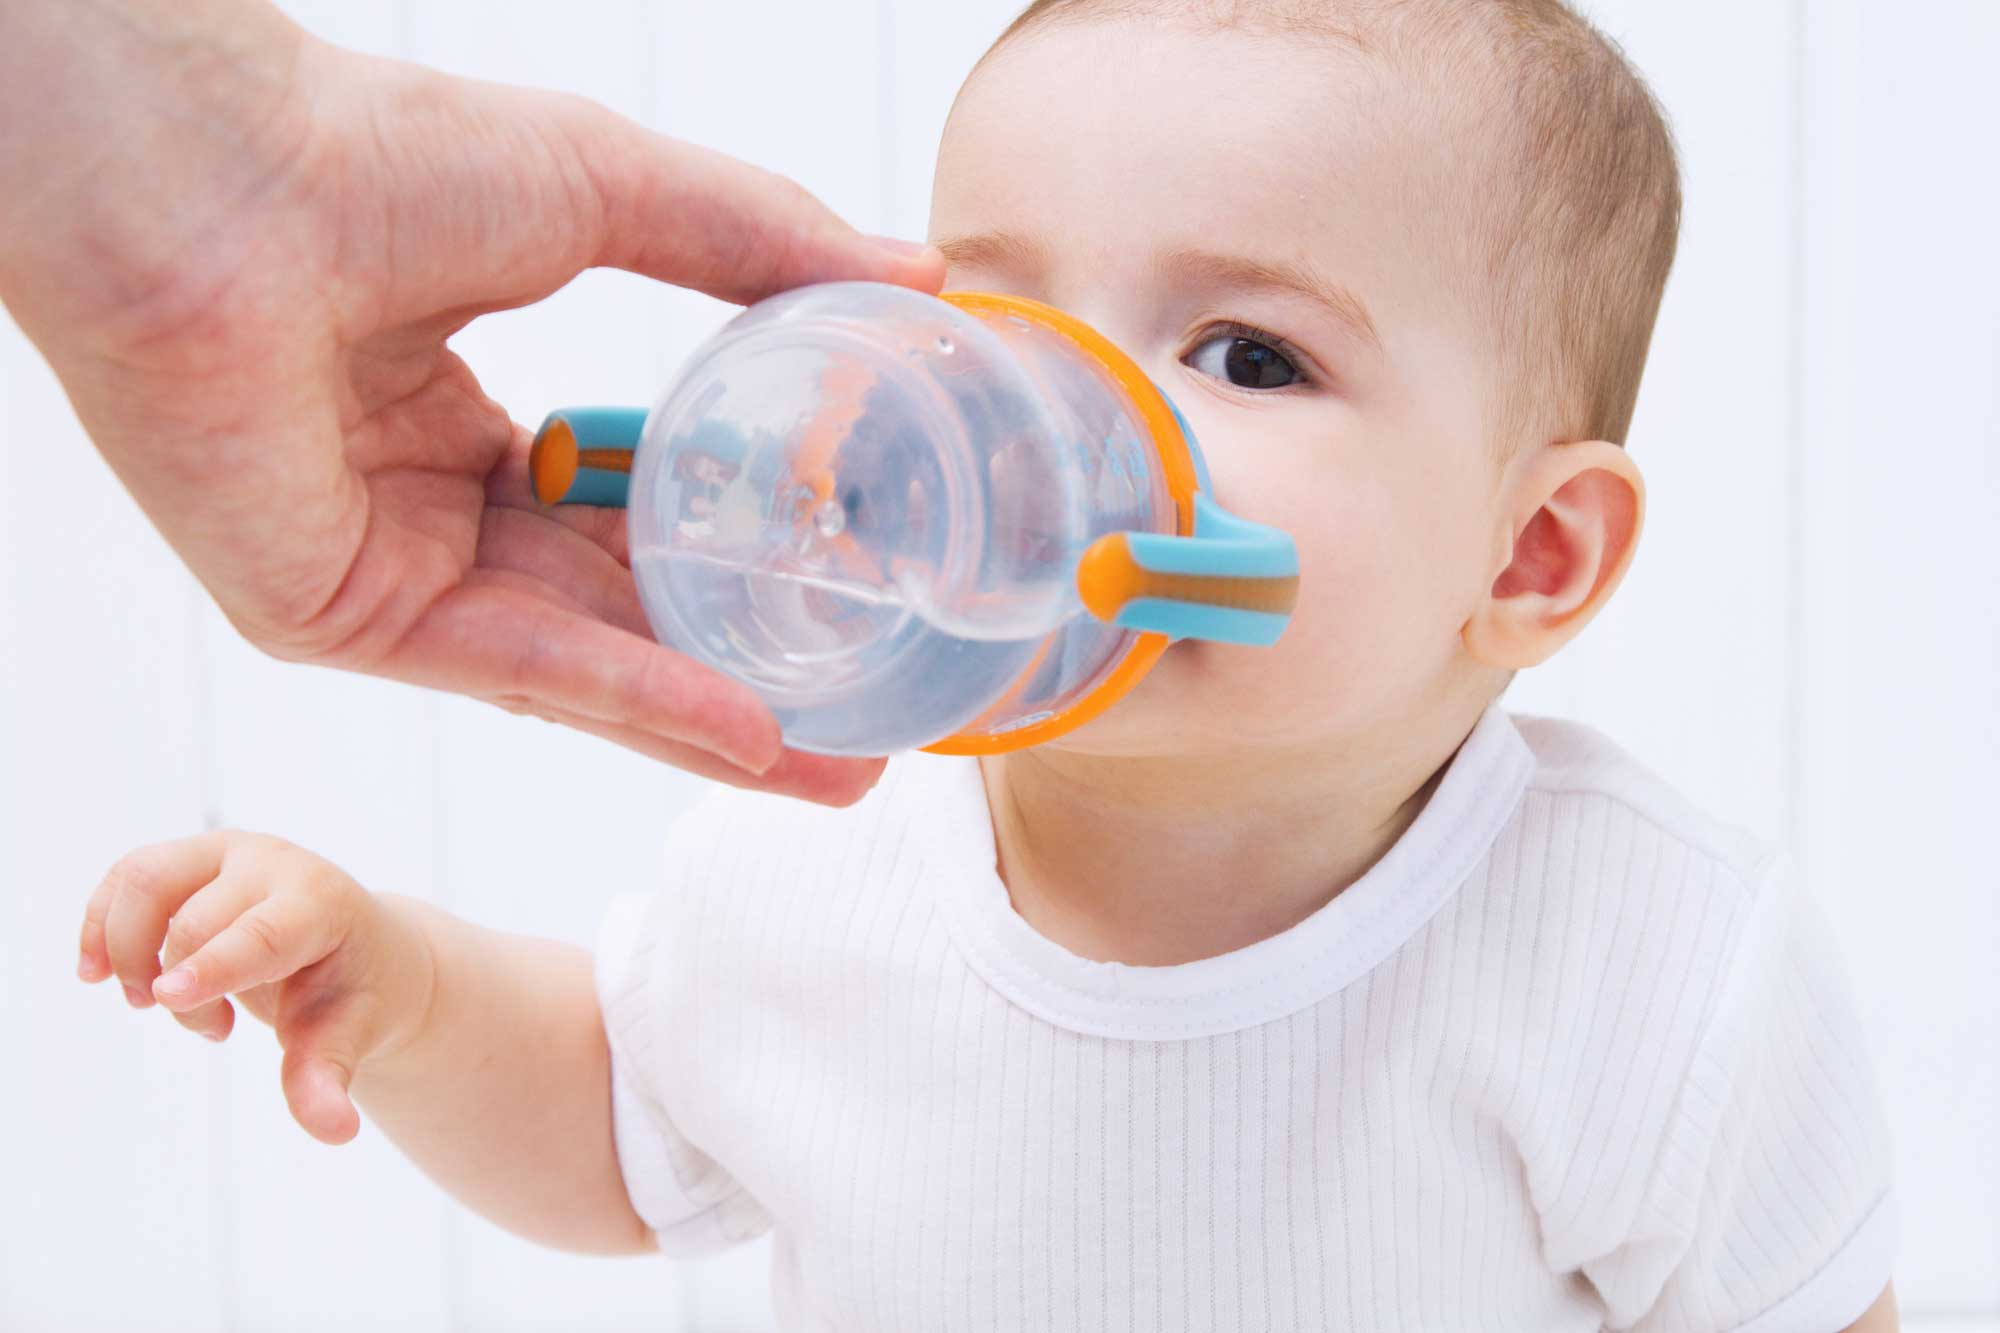 Tooth Decay in Infants and Toddlers